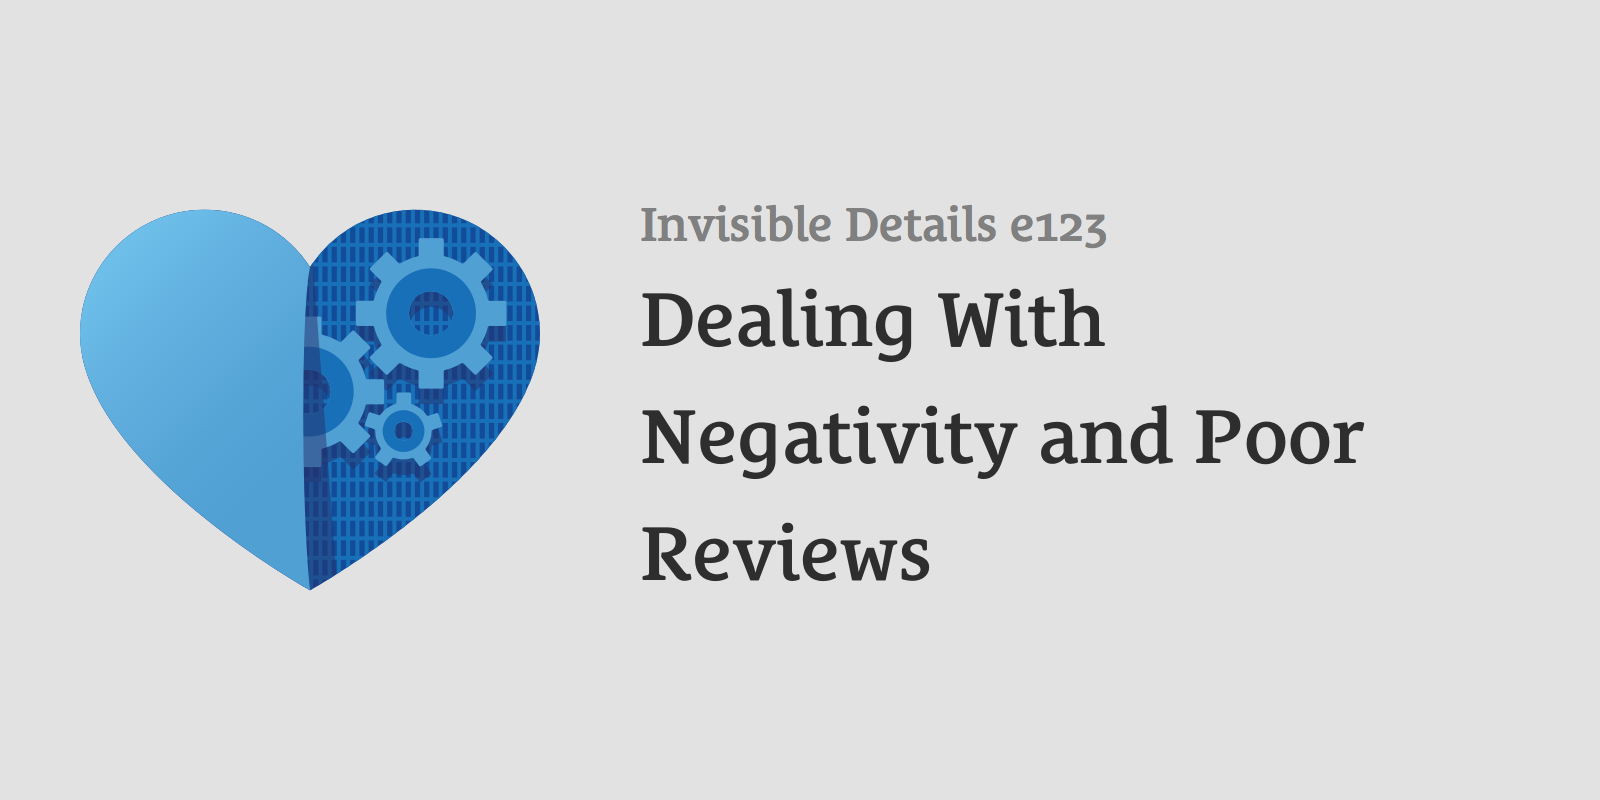 e123: Dealing With Negativity and Poor Reviews